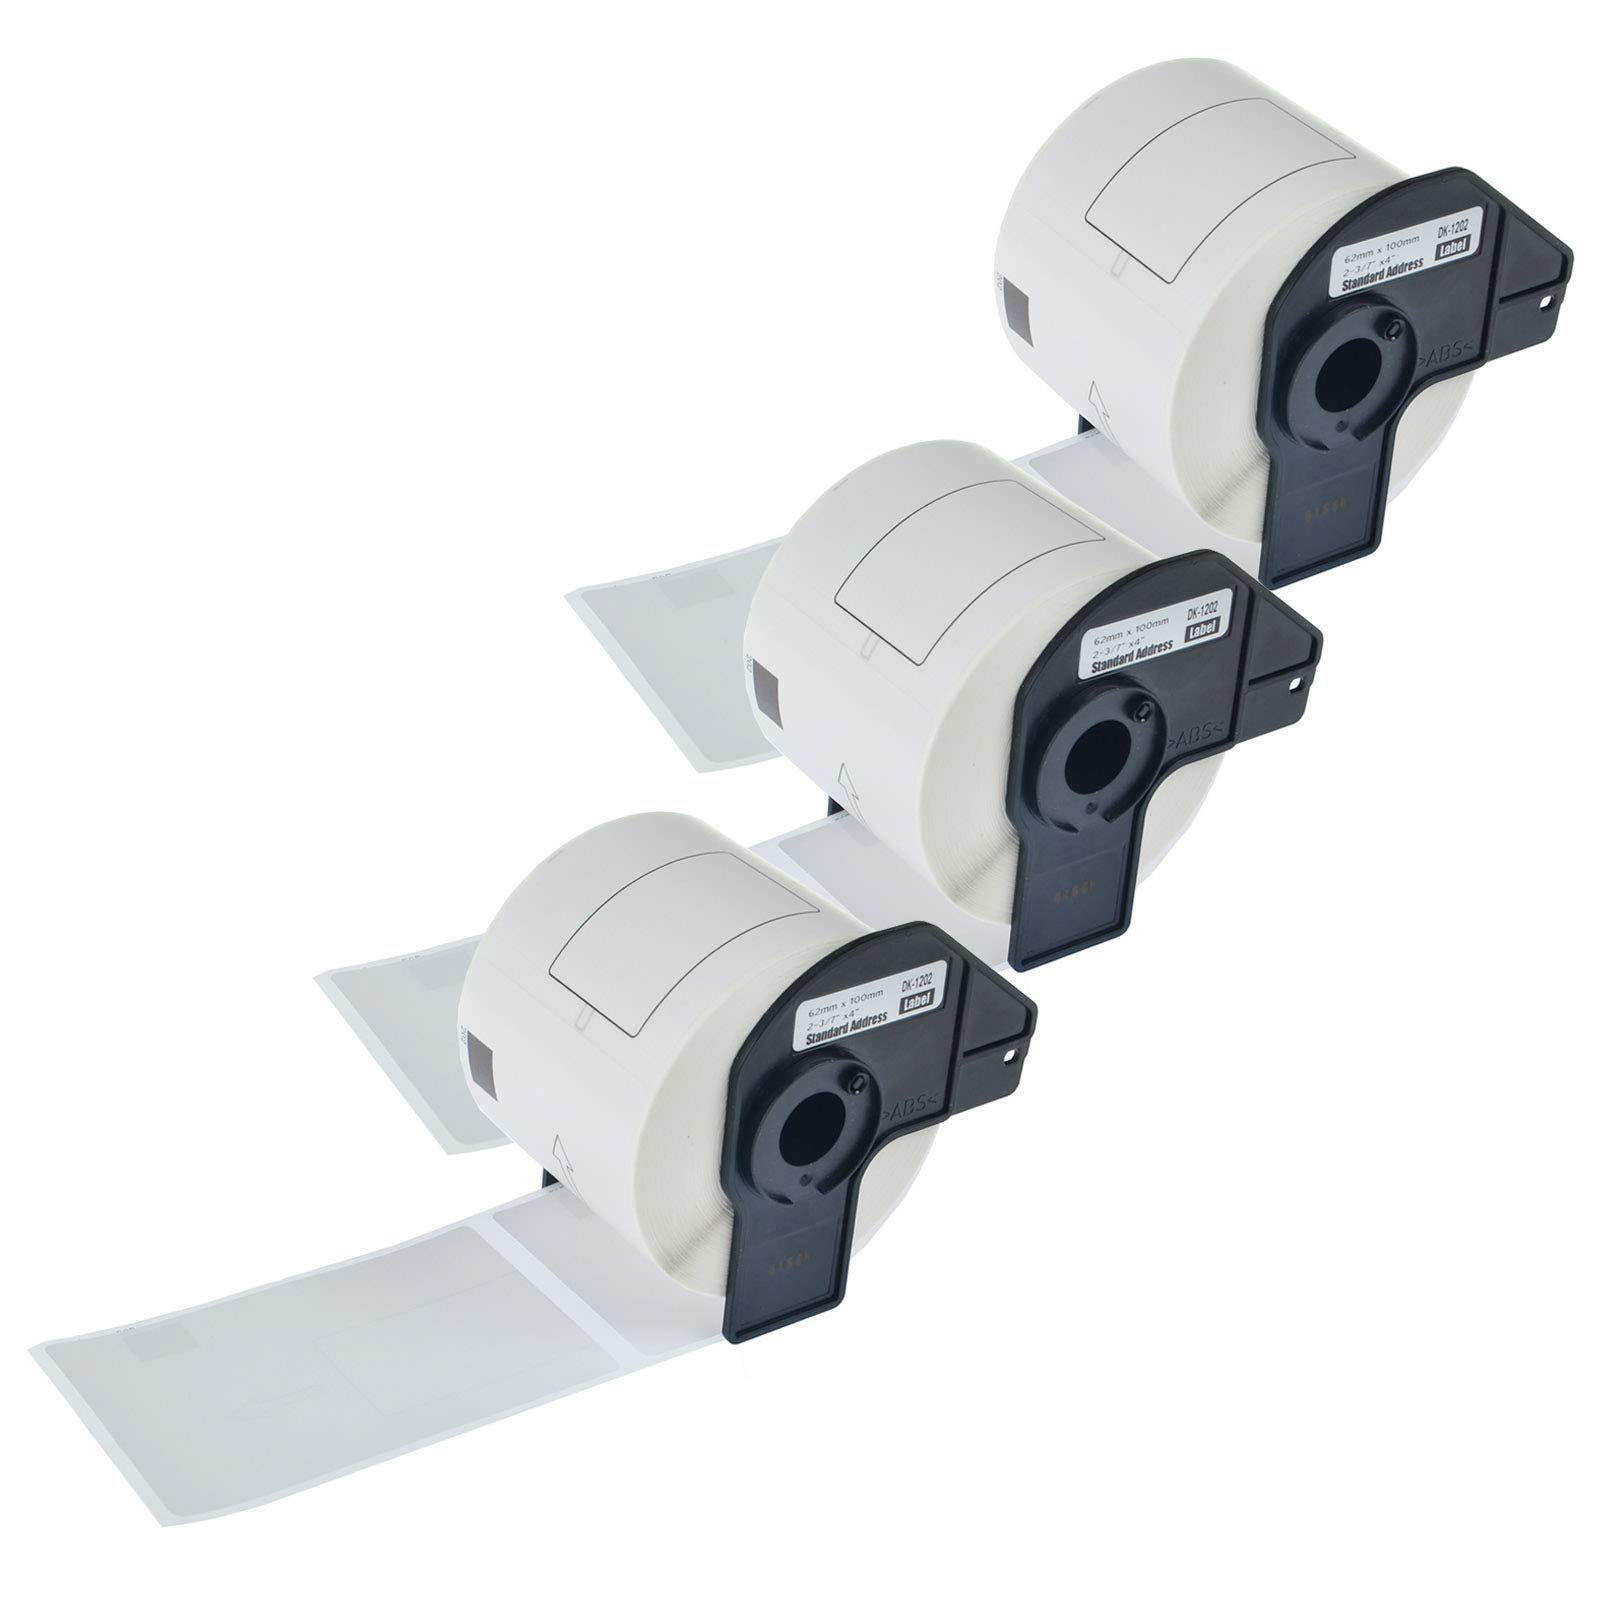 KCYMTONER 3 Rolls Compatible for Brother DK-1202 White Continuous Length Paper Tape Labels,62mm x 100mm (2-3/7'' x 4''), use in P-Touch QL-500 QL-710W QL-1050 QL-1060N Series Label Maker